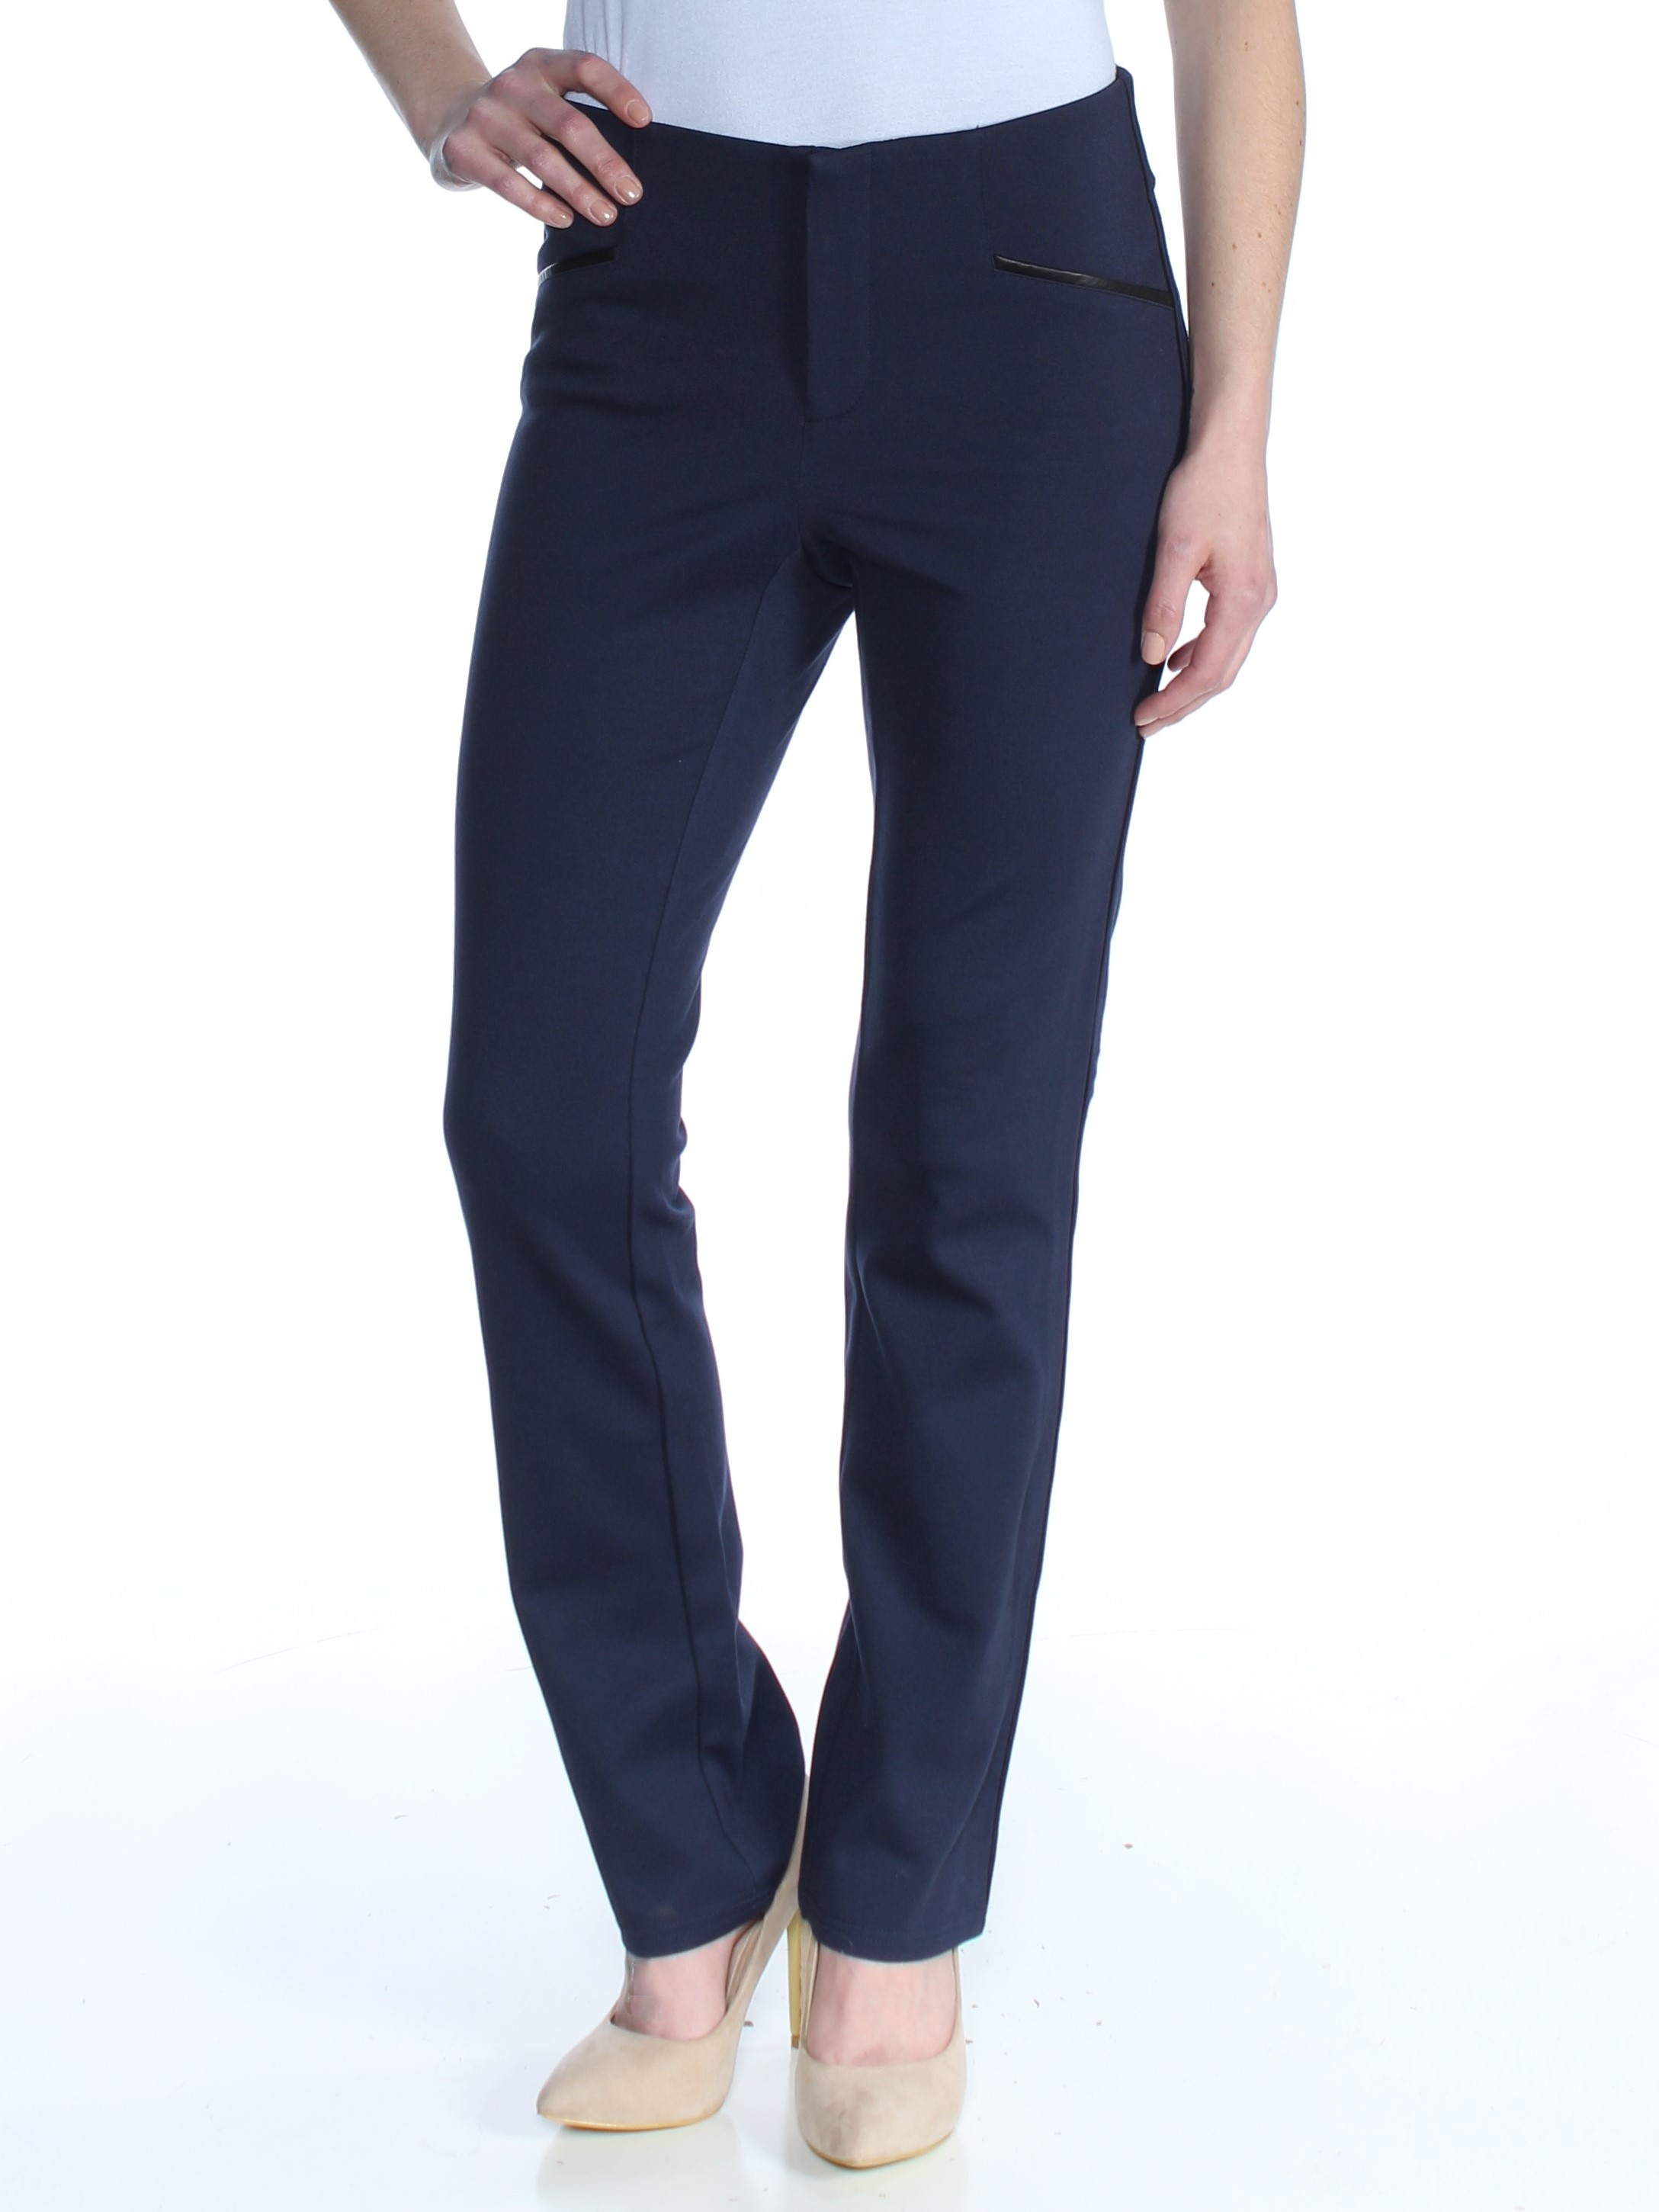 I-N-C Womens Faux-Leather Casual Trouser Pants